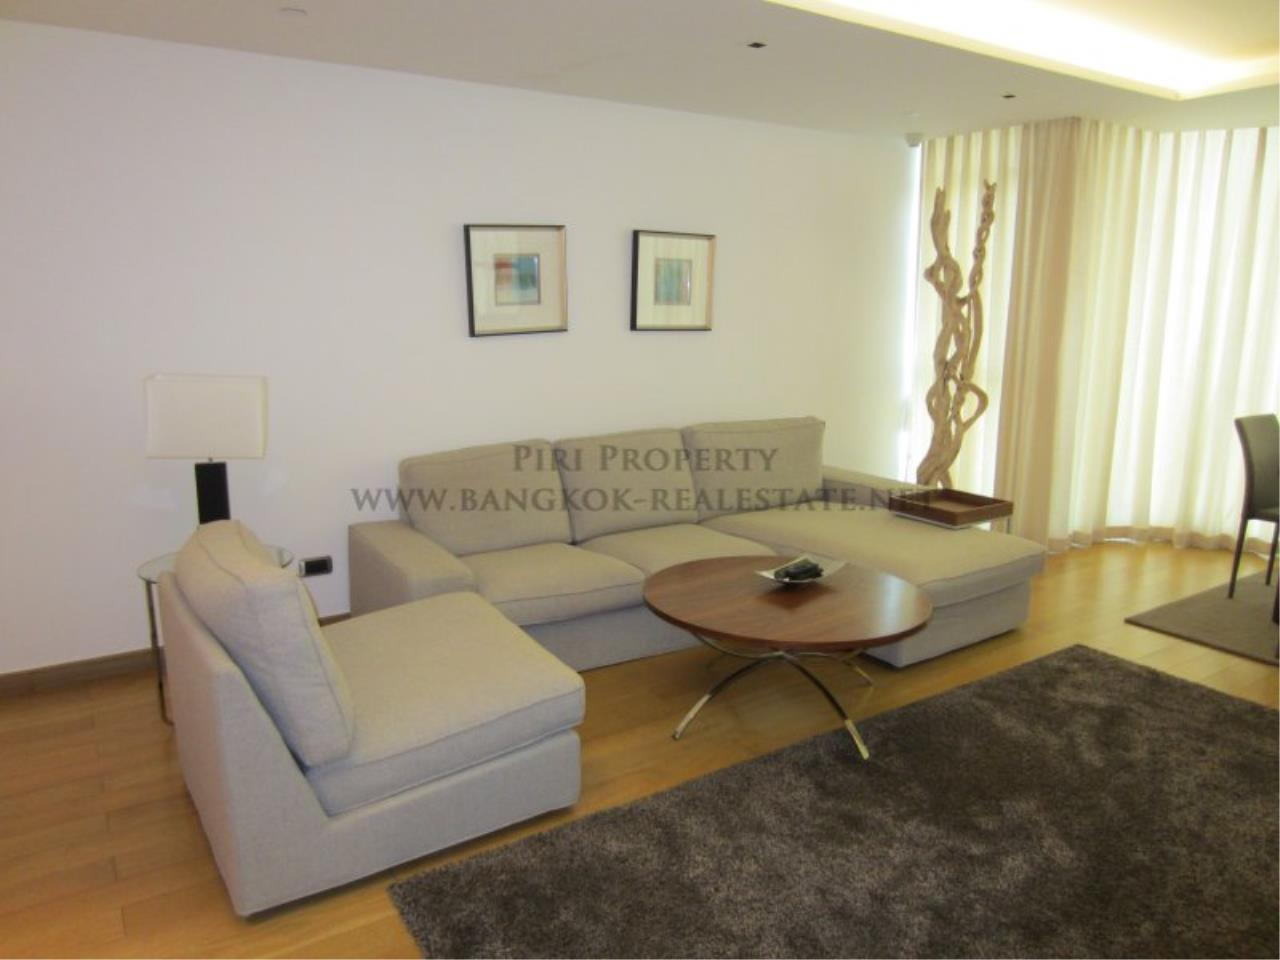 Piri Property Agency's Spacious 2 Bedroom Condo or Rent in Ari - Le Monaco 1